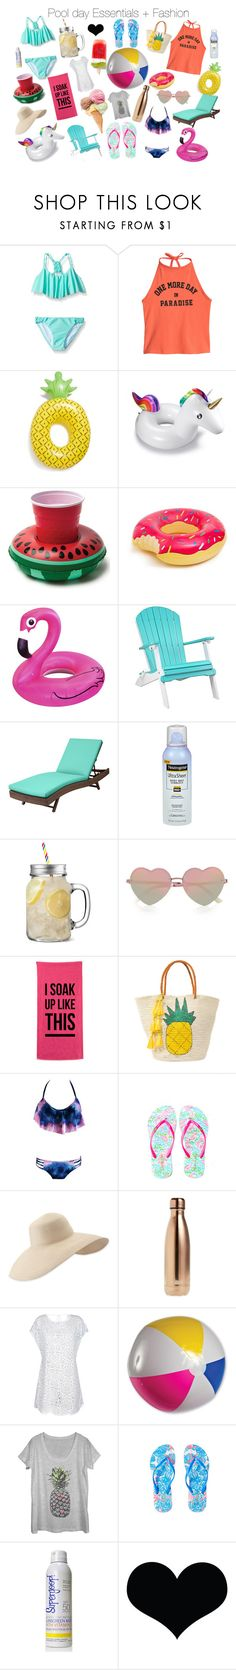 """Pool Day Essentials + Fashion"" by lilakaufman ❤ liked on Polyvore featuring Seafolly, Big Mouth, DutchCrafters, Improvements, Neutrogena, River Island, Sensi Studio, Lilly Pulitzer, Eric Javits and S'well"